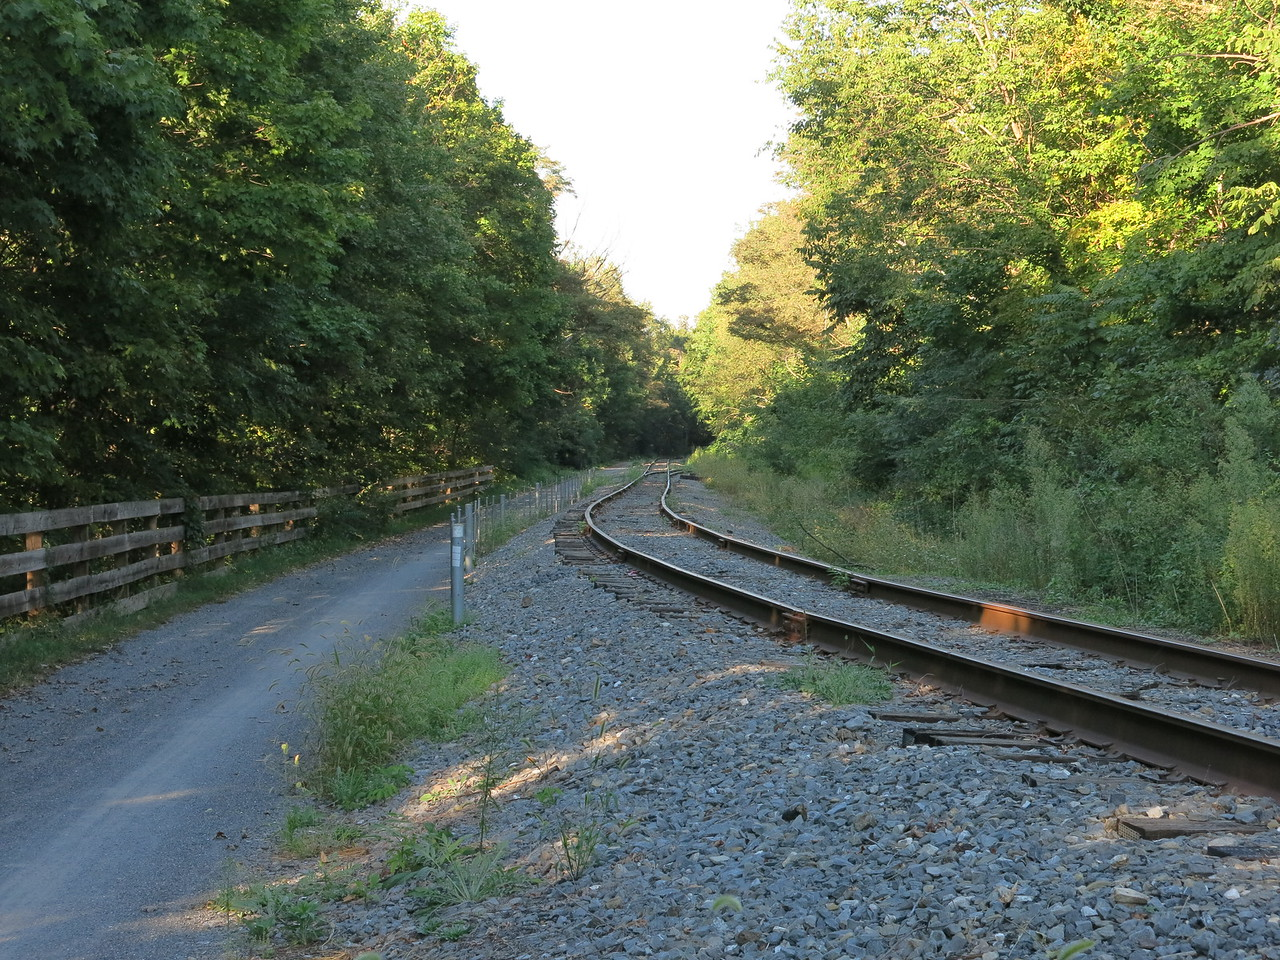 The trail runs adjacent to the Western Maryland Scenic Railroad (WMSR) south of Frostburg